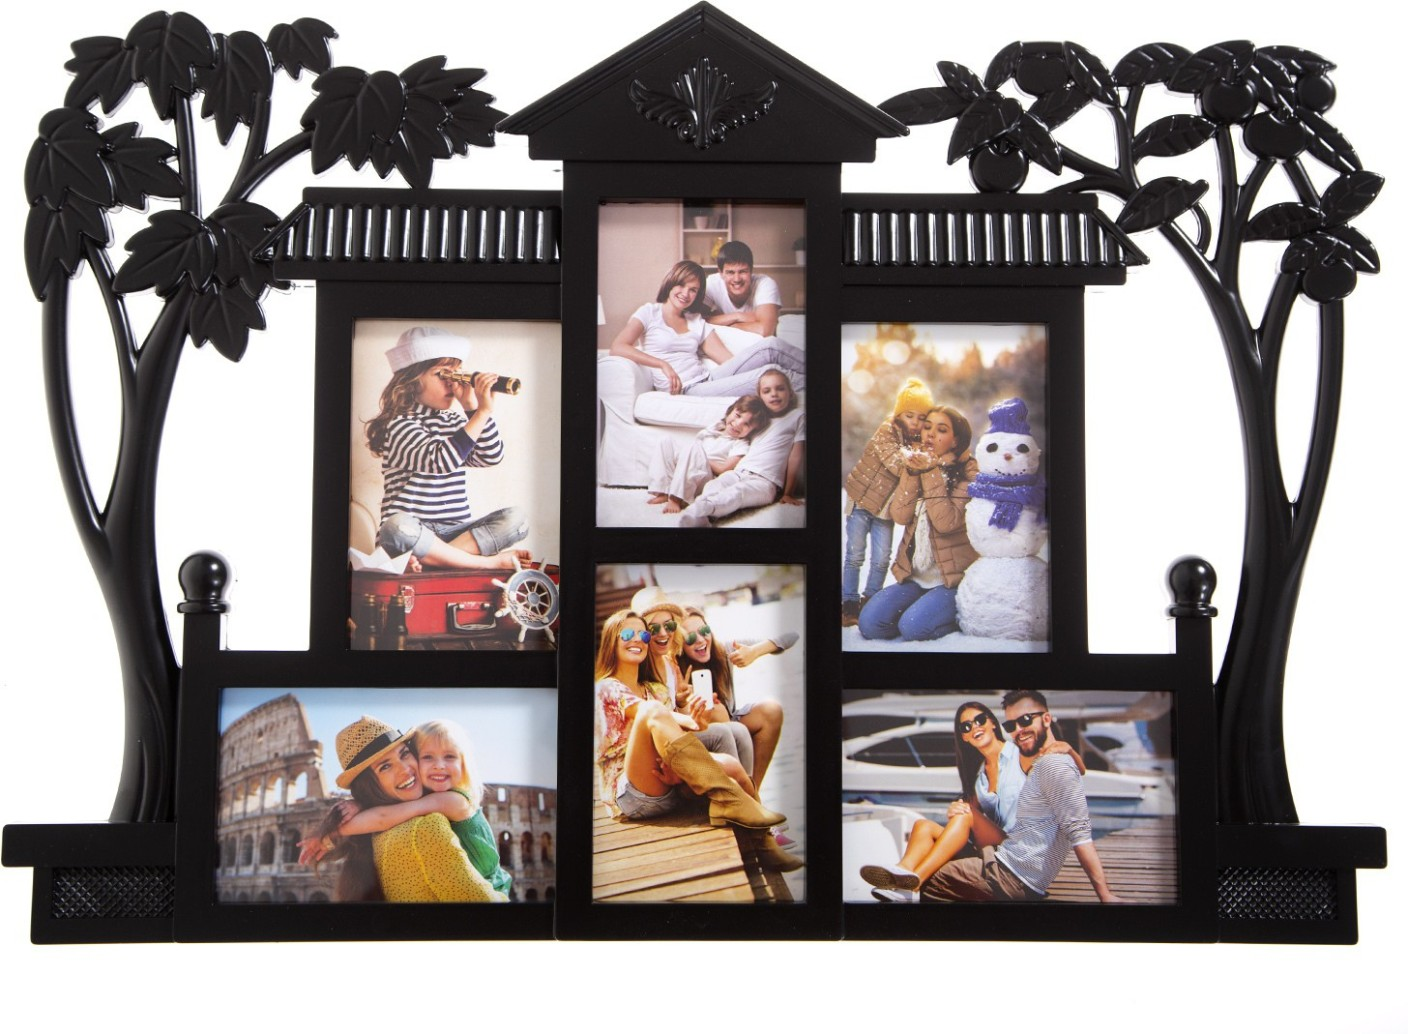 smera generic photo frame price in india buy smera generic photo frame online at. Black Bedroom Furniture Sets. Home Design Ideas